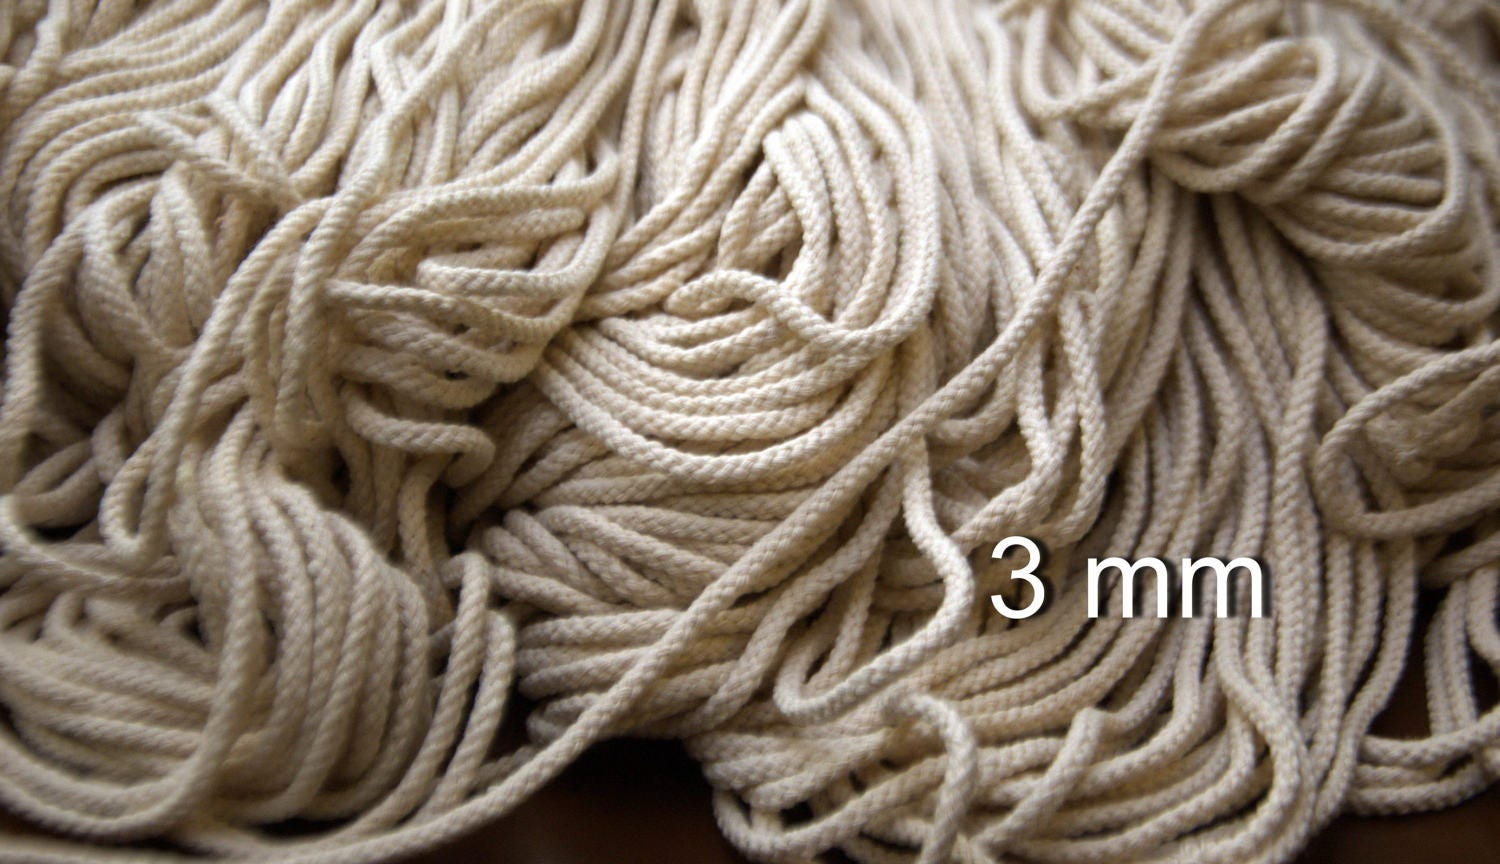 macrame cord cotton macrame cotton cord macrame cord 3 mm 1 8 1070